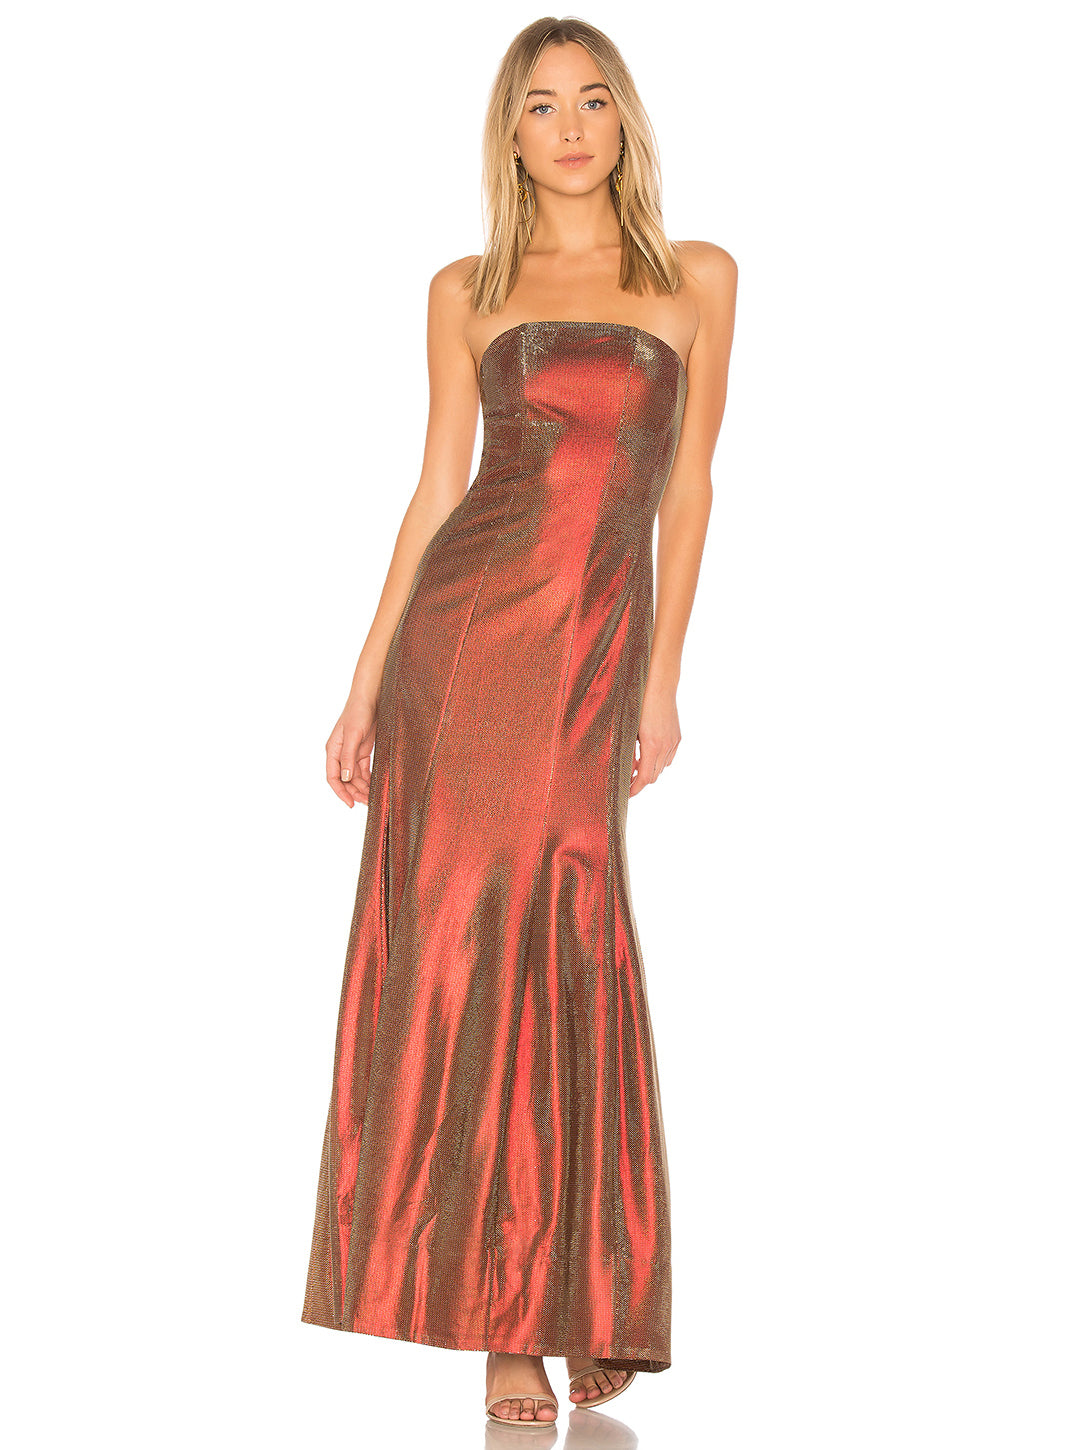 Abra Gown in Red/Gold | Lovers + Friends - Lovers + Friends